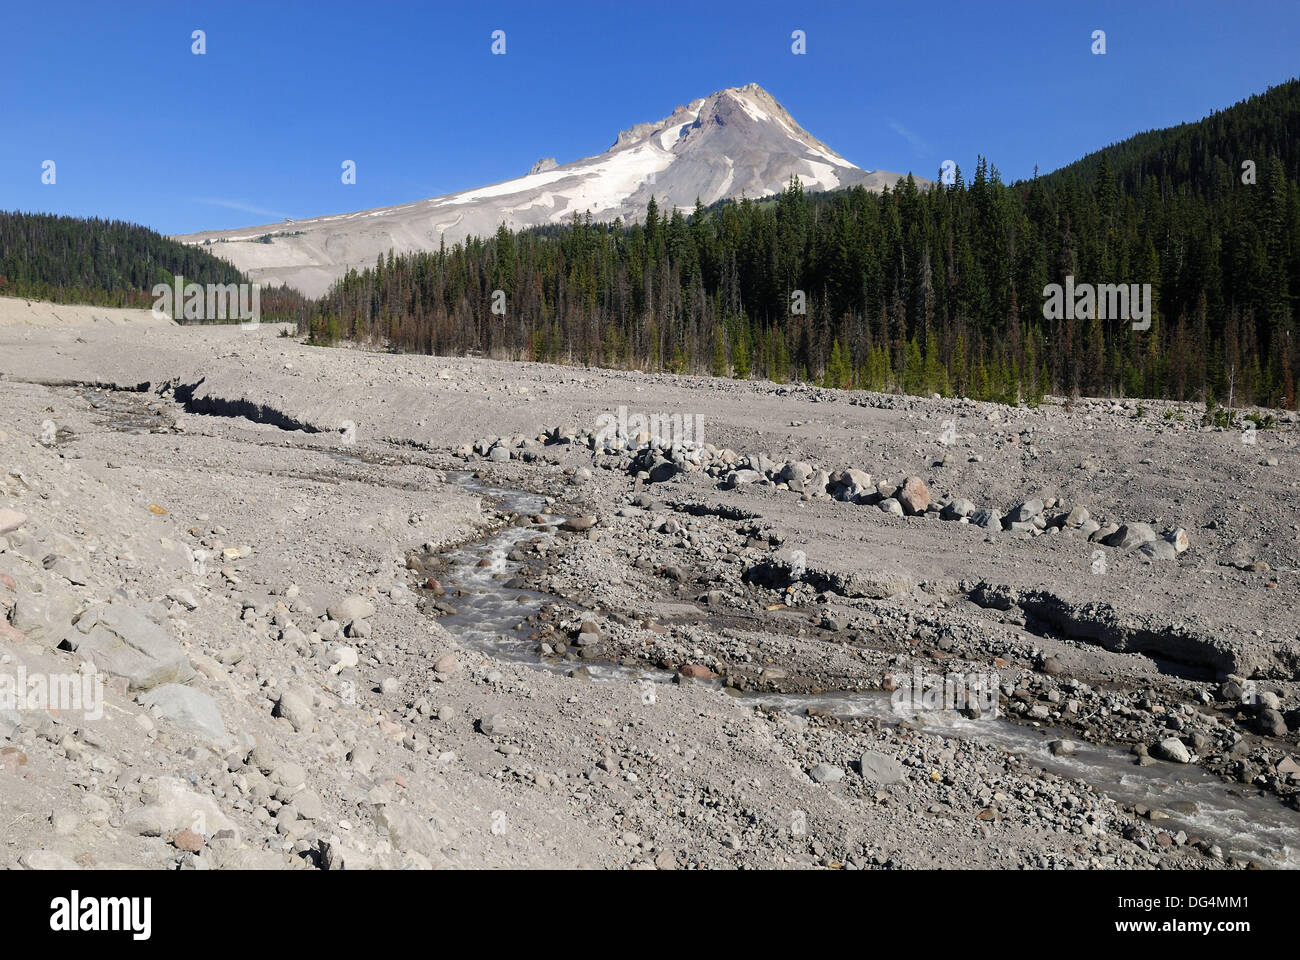 White River Gorge with Mount Hood volcanoe, Cascade Range, Oregon, USA Stock Photo